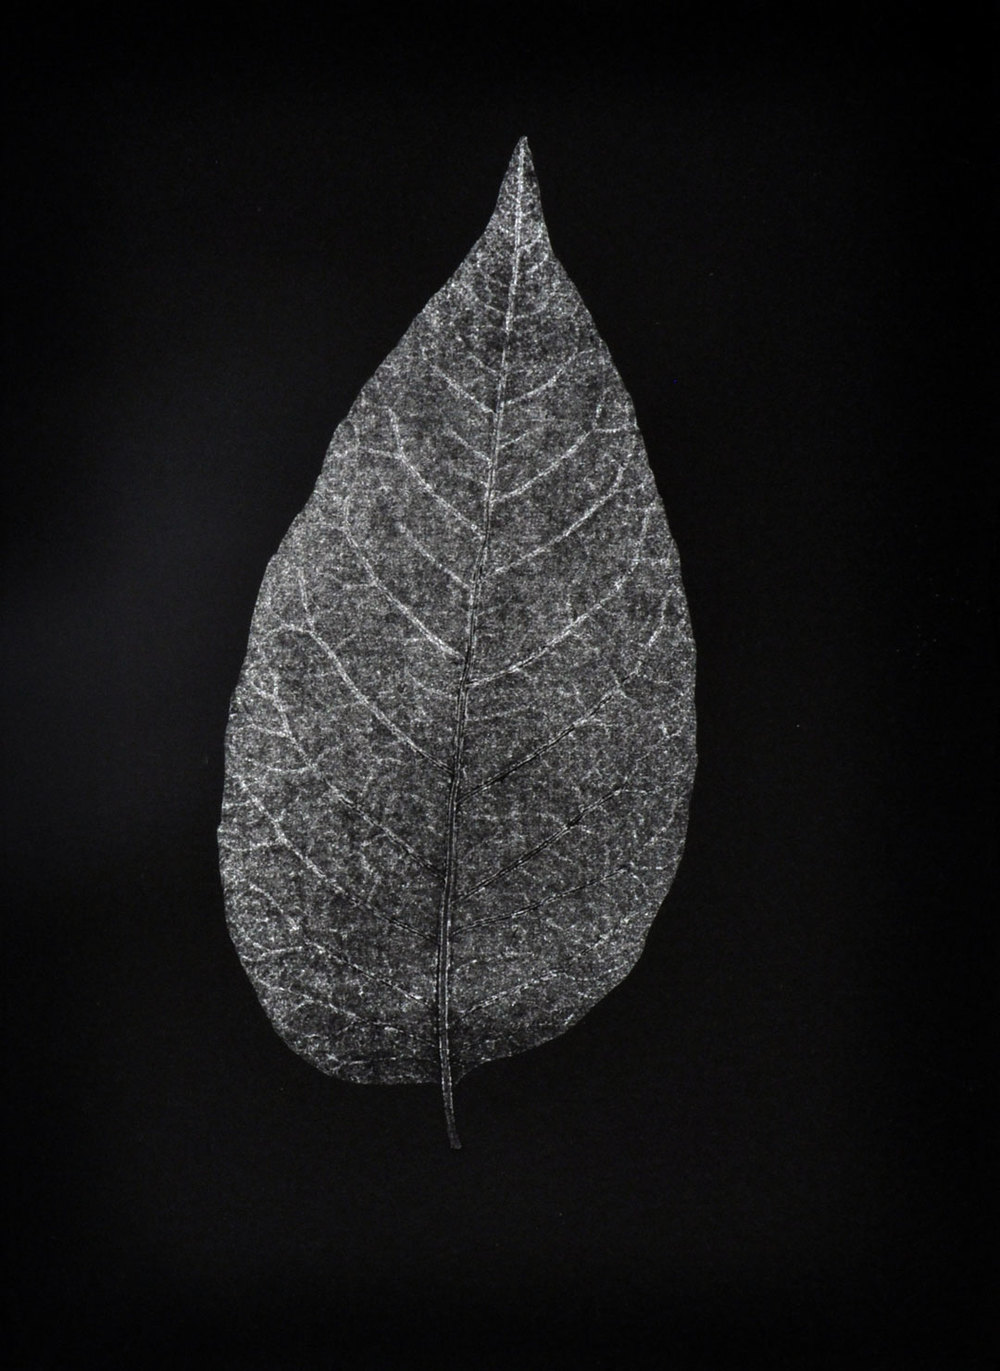 "Monotype, 2014, Christine Mauersberger dried and flattened Leaf, silver ink, black somerset paper. 5 1/2"" x 7 1/2"""